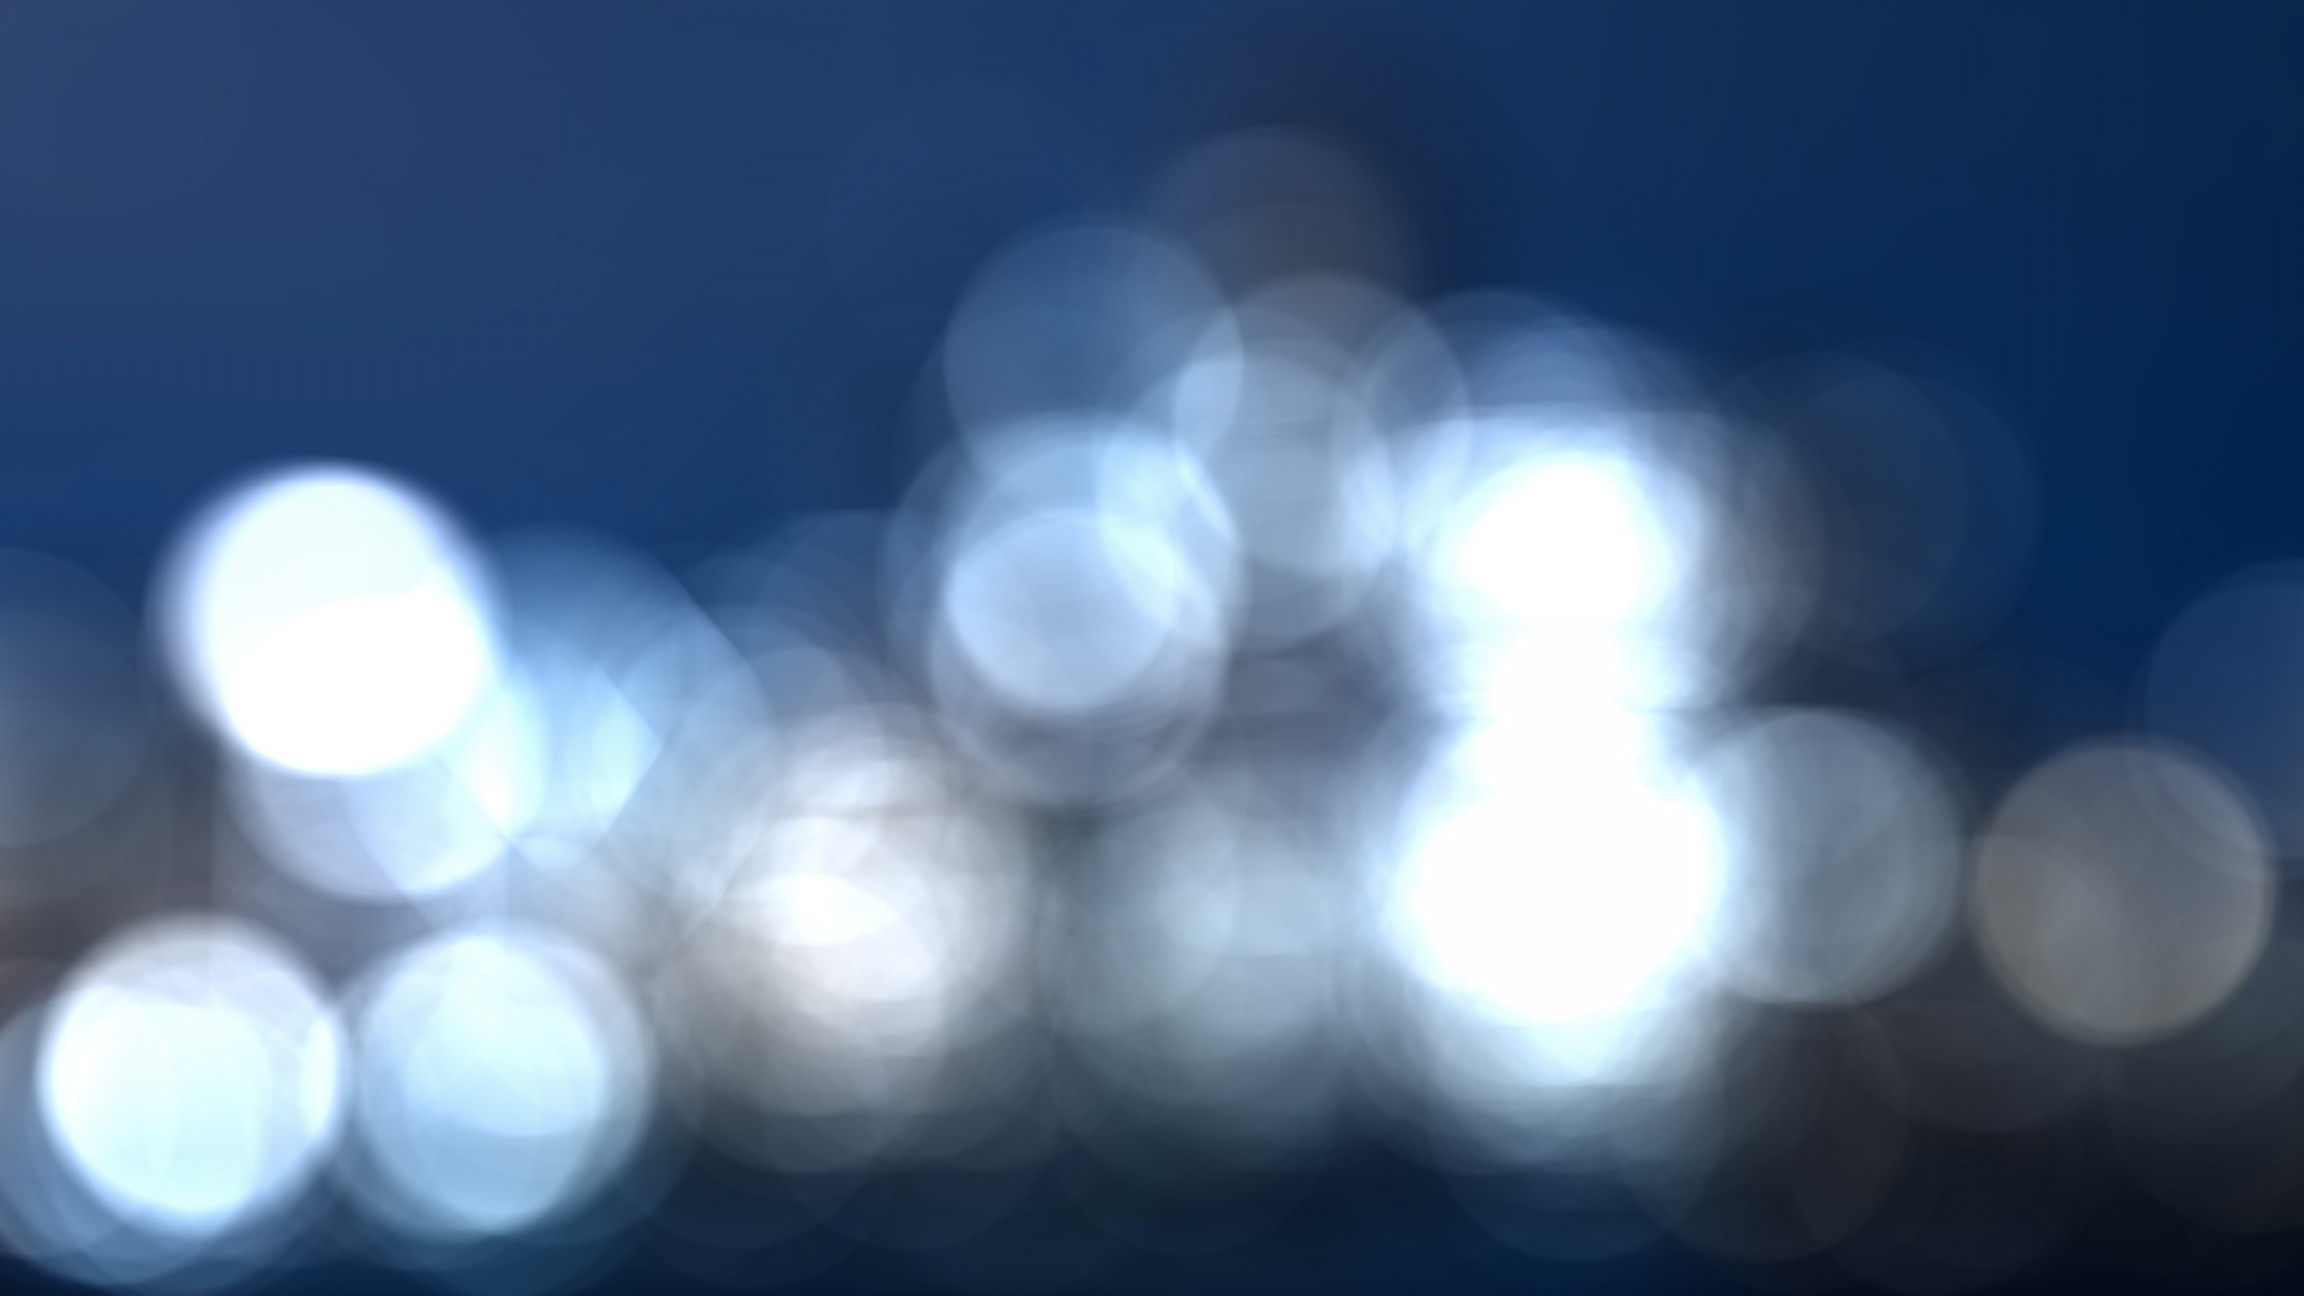 Abstract Vector Backgrounds For Photoshop: How To Create A Bokeh Background Using Photoshop